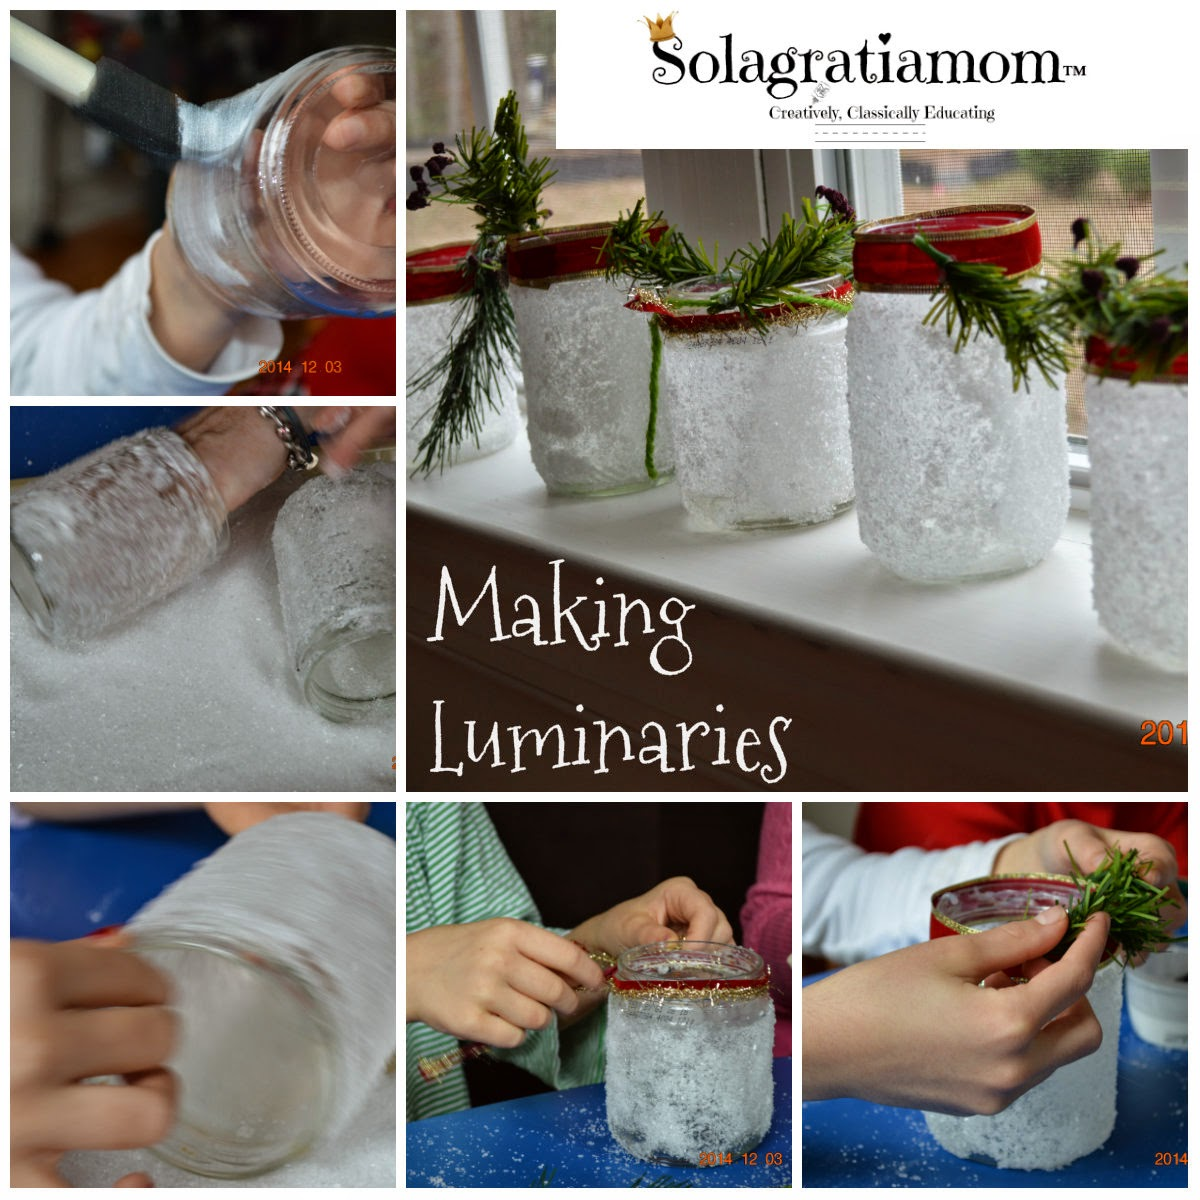 Solagratiamom christmas party wonderful wednesday 2014 for Homemade luminaries